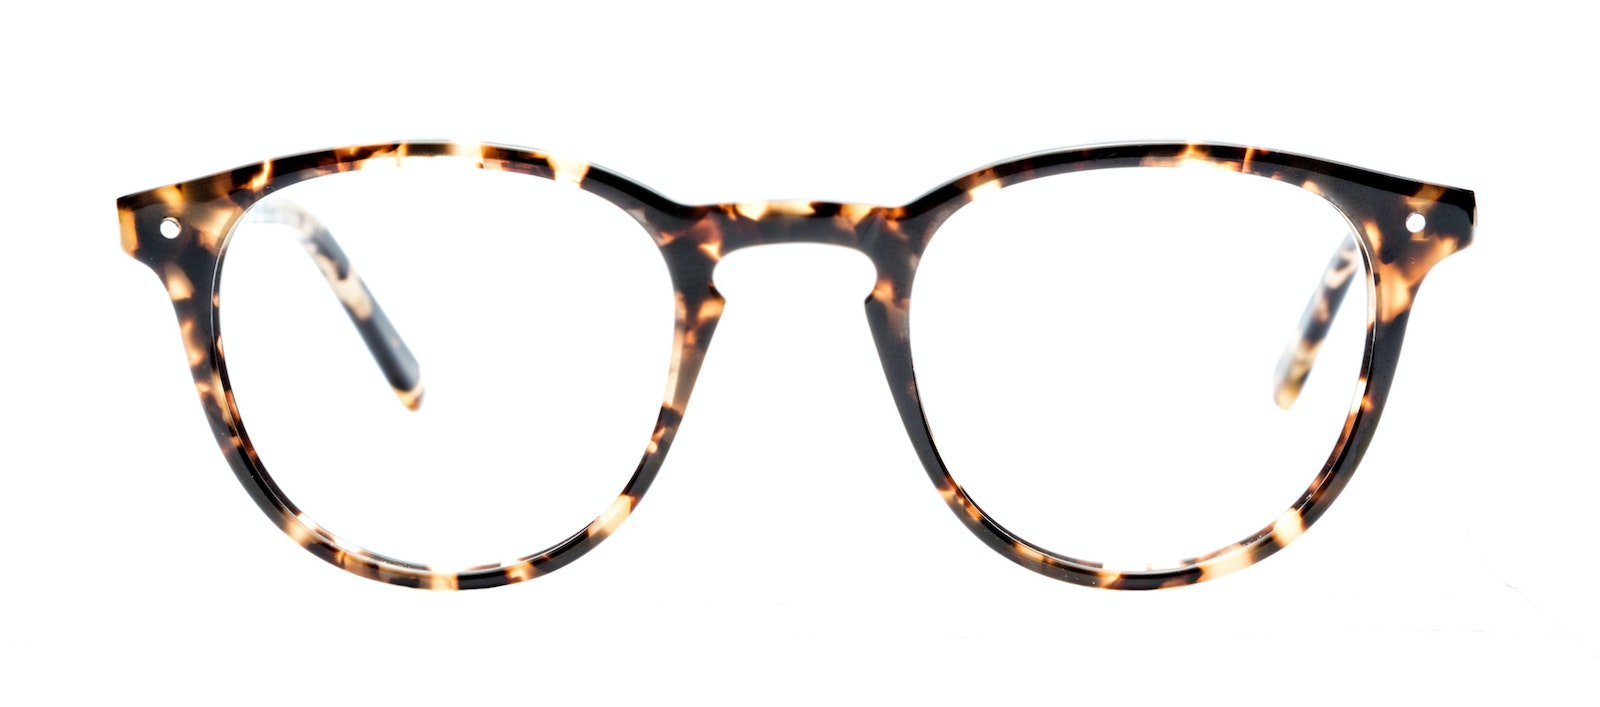 Affordable Fashion Glasses Round Eyeglasses Men Cult Dark Tortoise Front